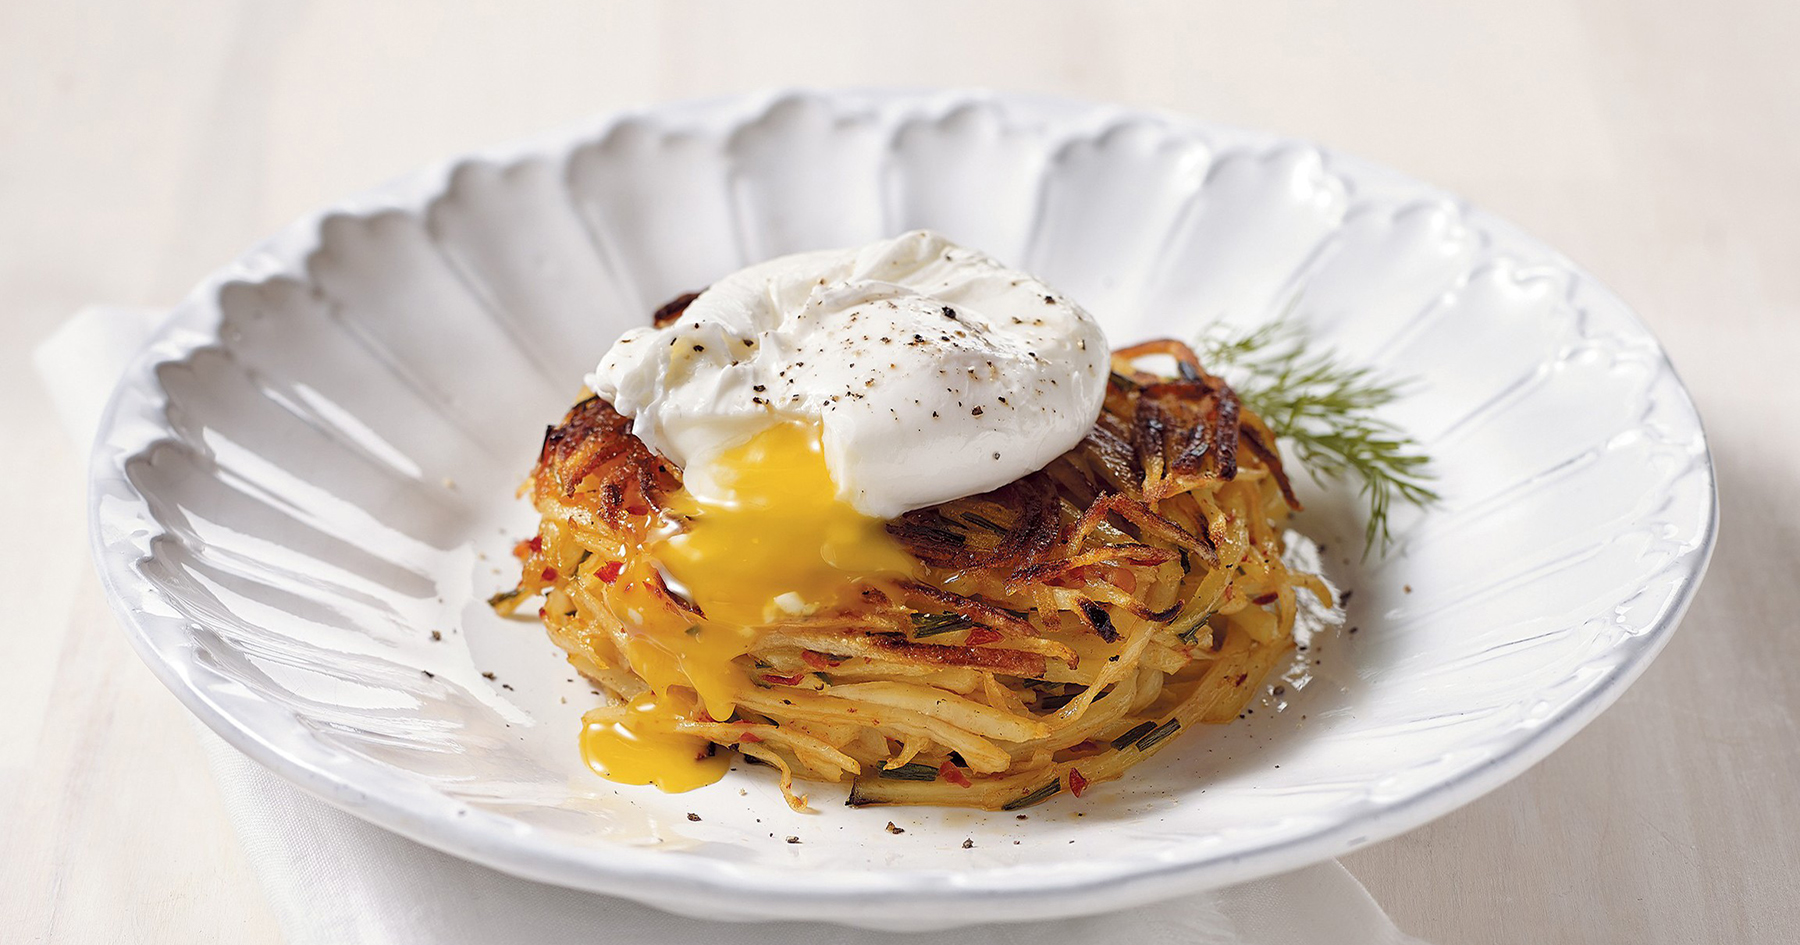 Potato Pancake with Neonata and Poached Egg